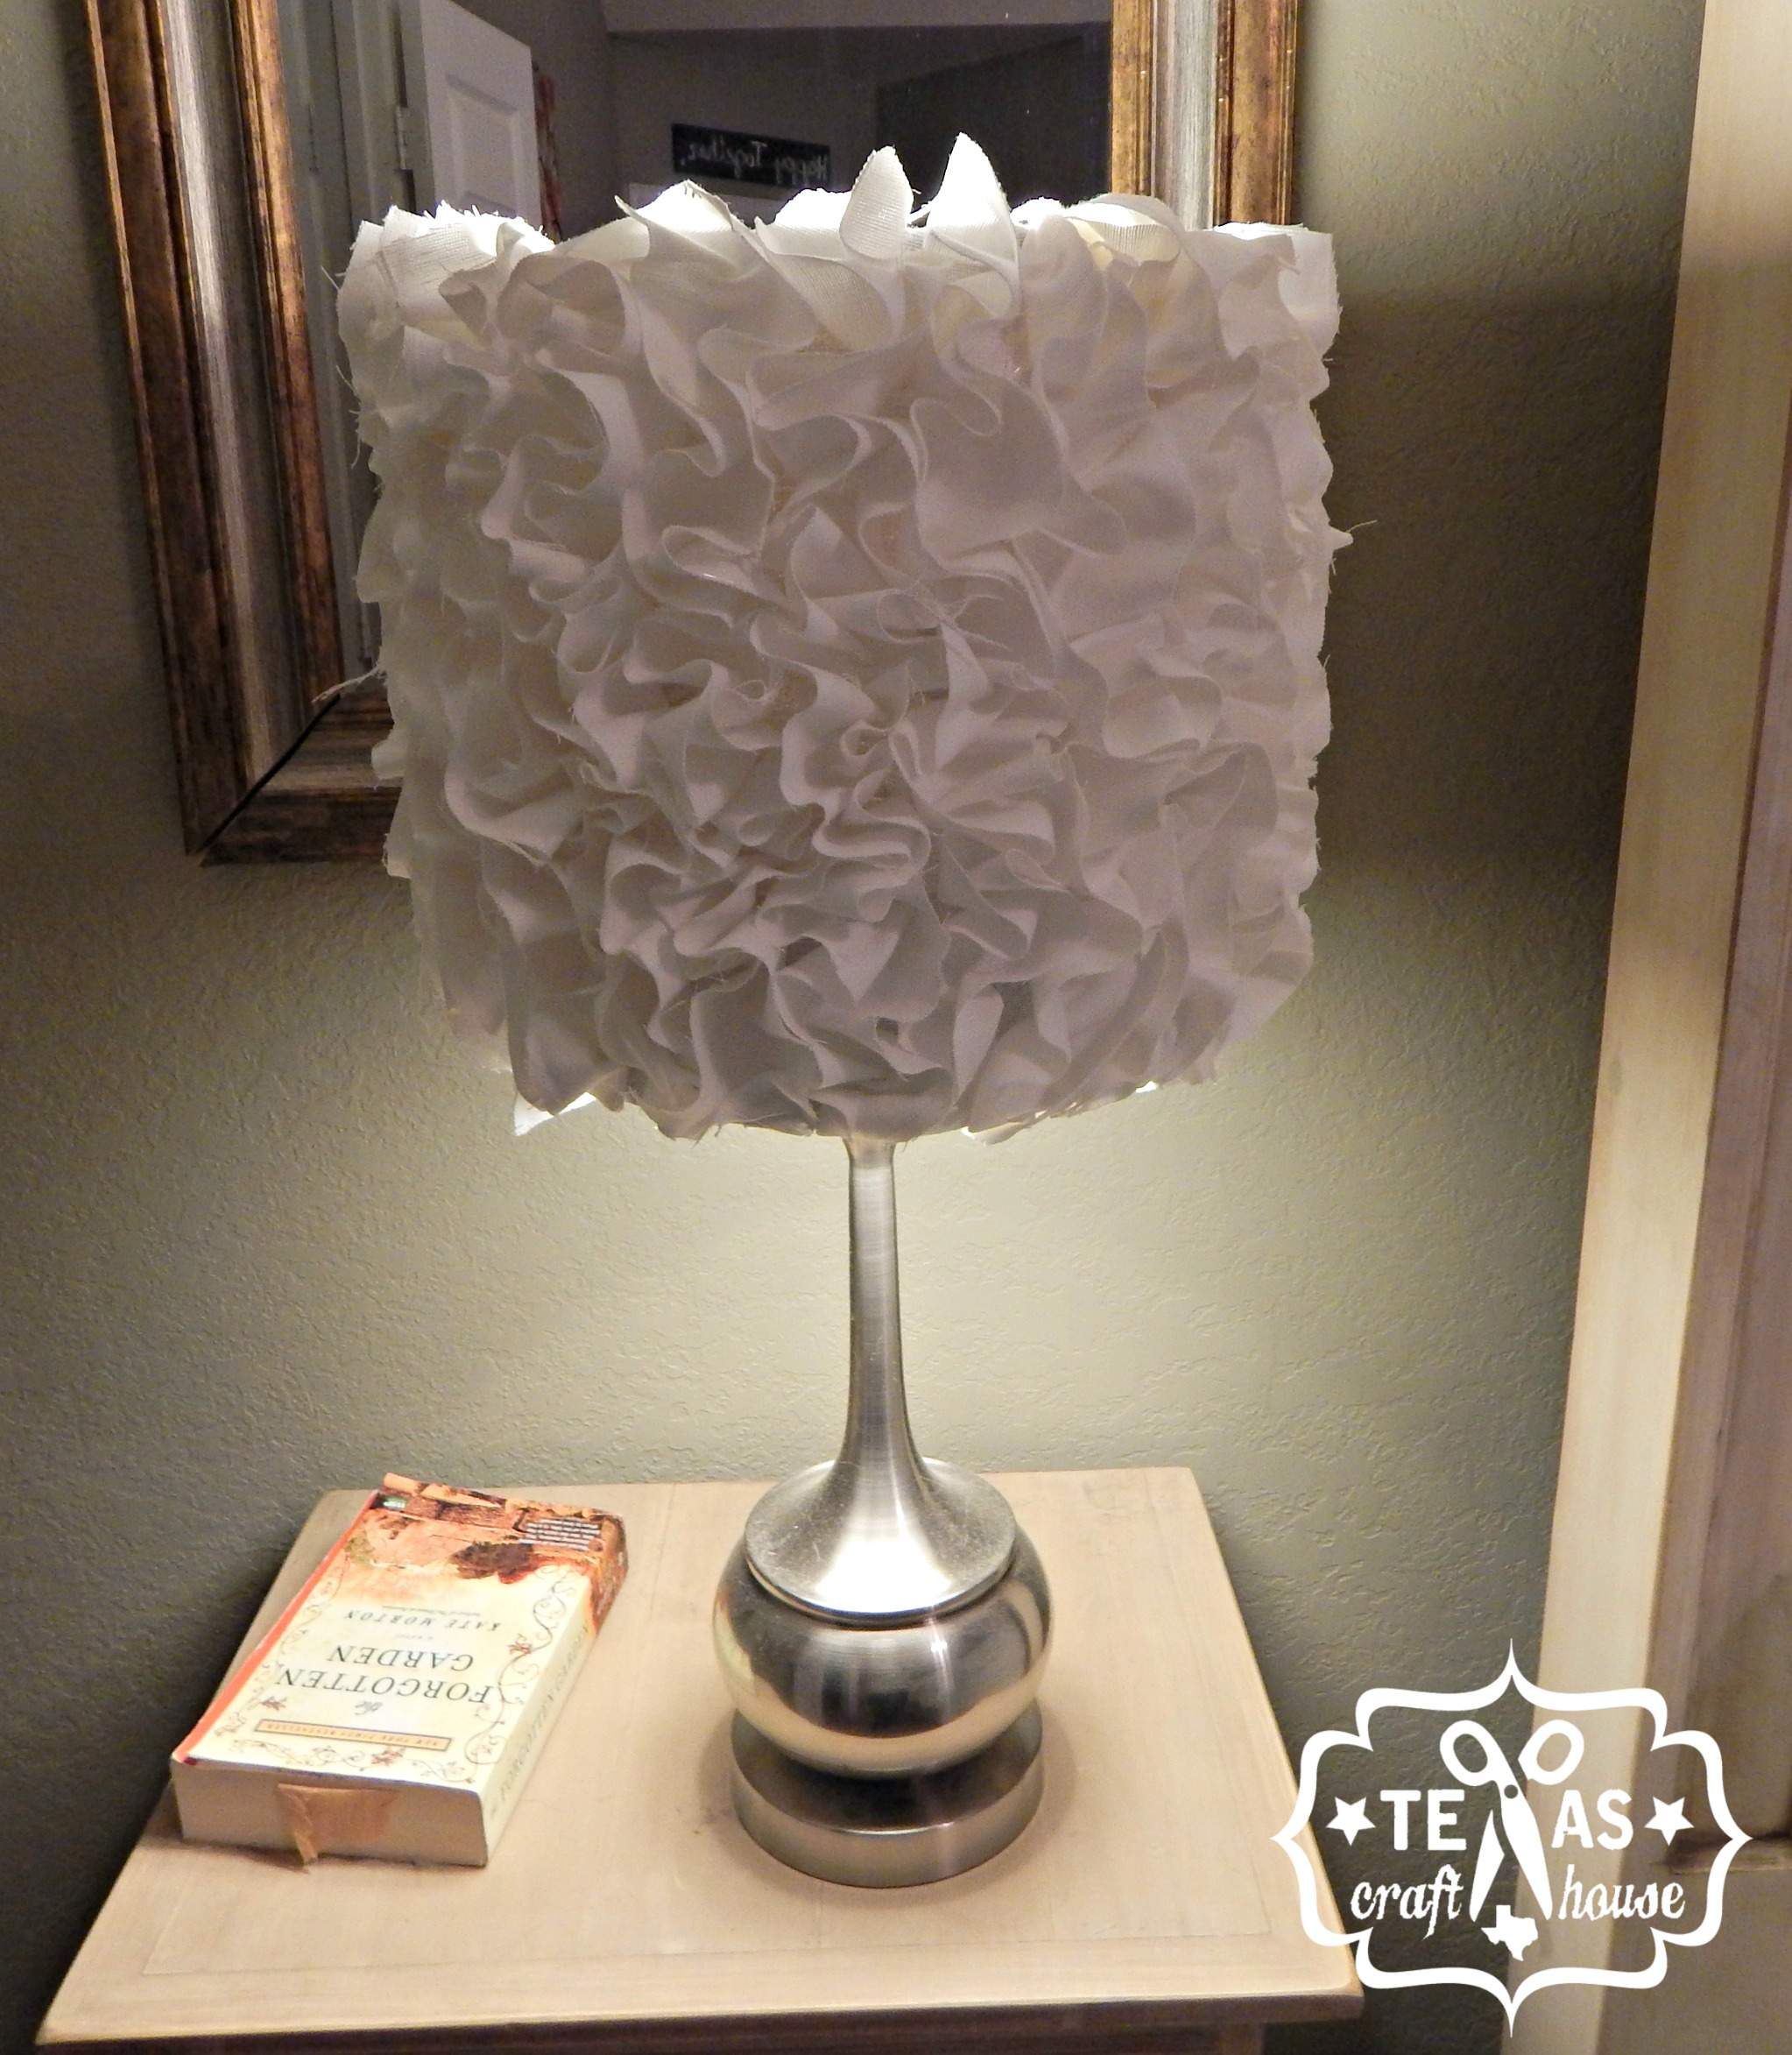 Give An Old Lampshade A New Makeover With This Great DIY